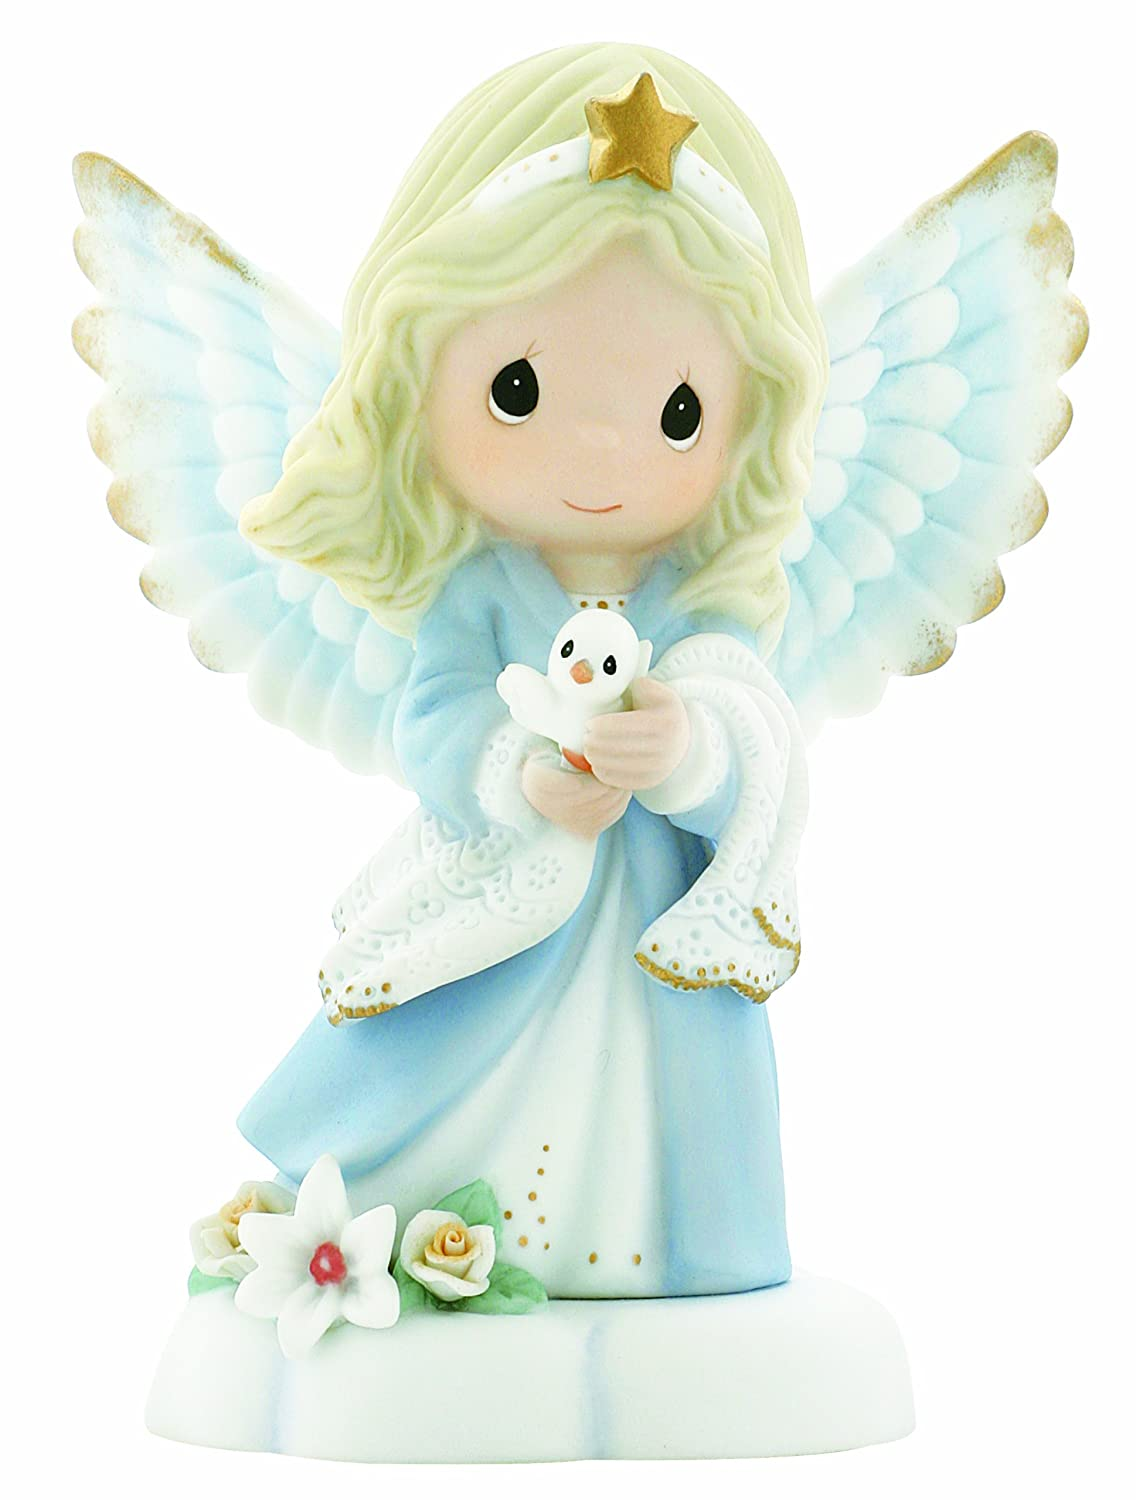 Precious Moments, In The Radiance Of Heaven's Light, Bisque Porcelain Figurine, Angel Gift